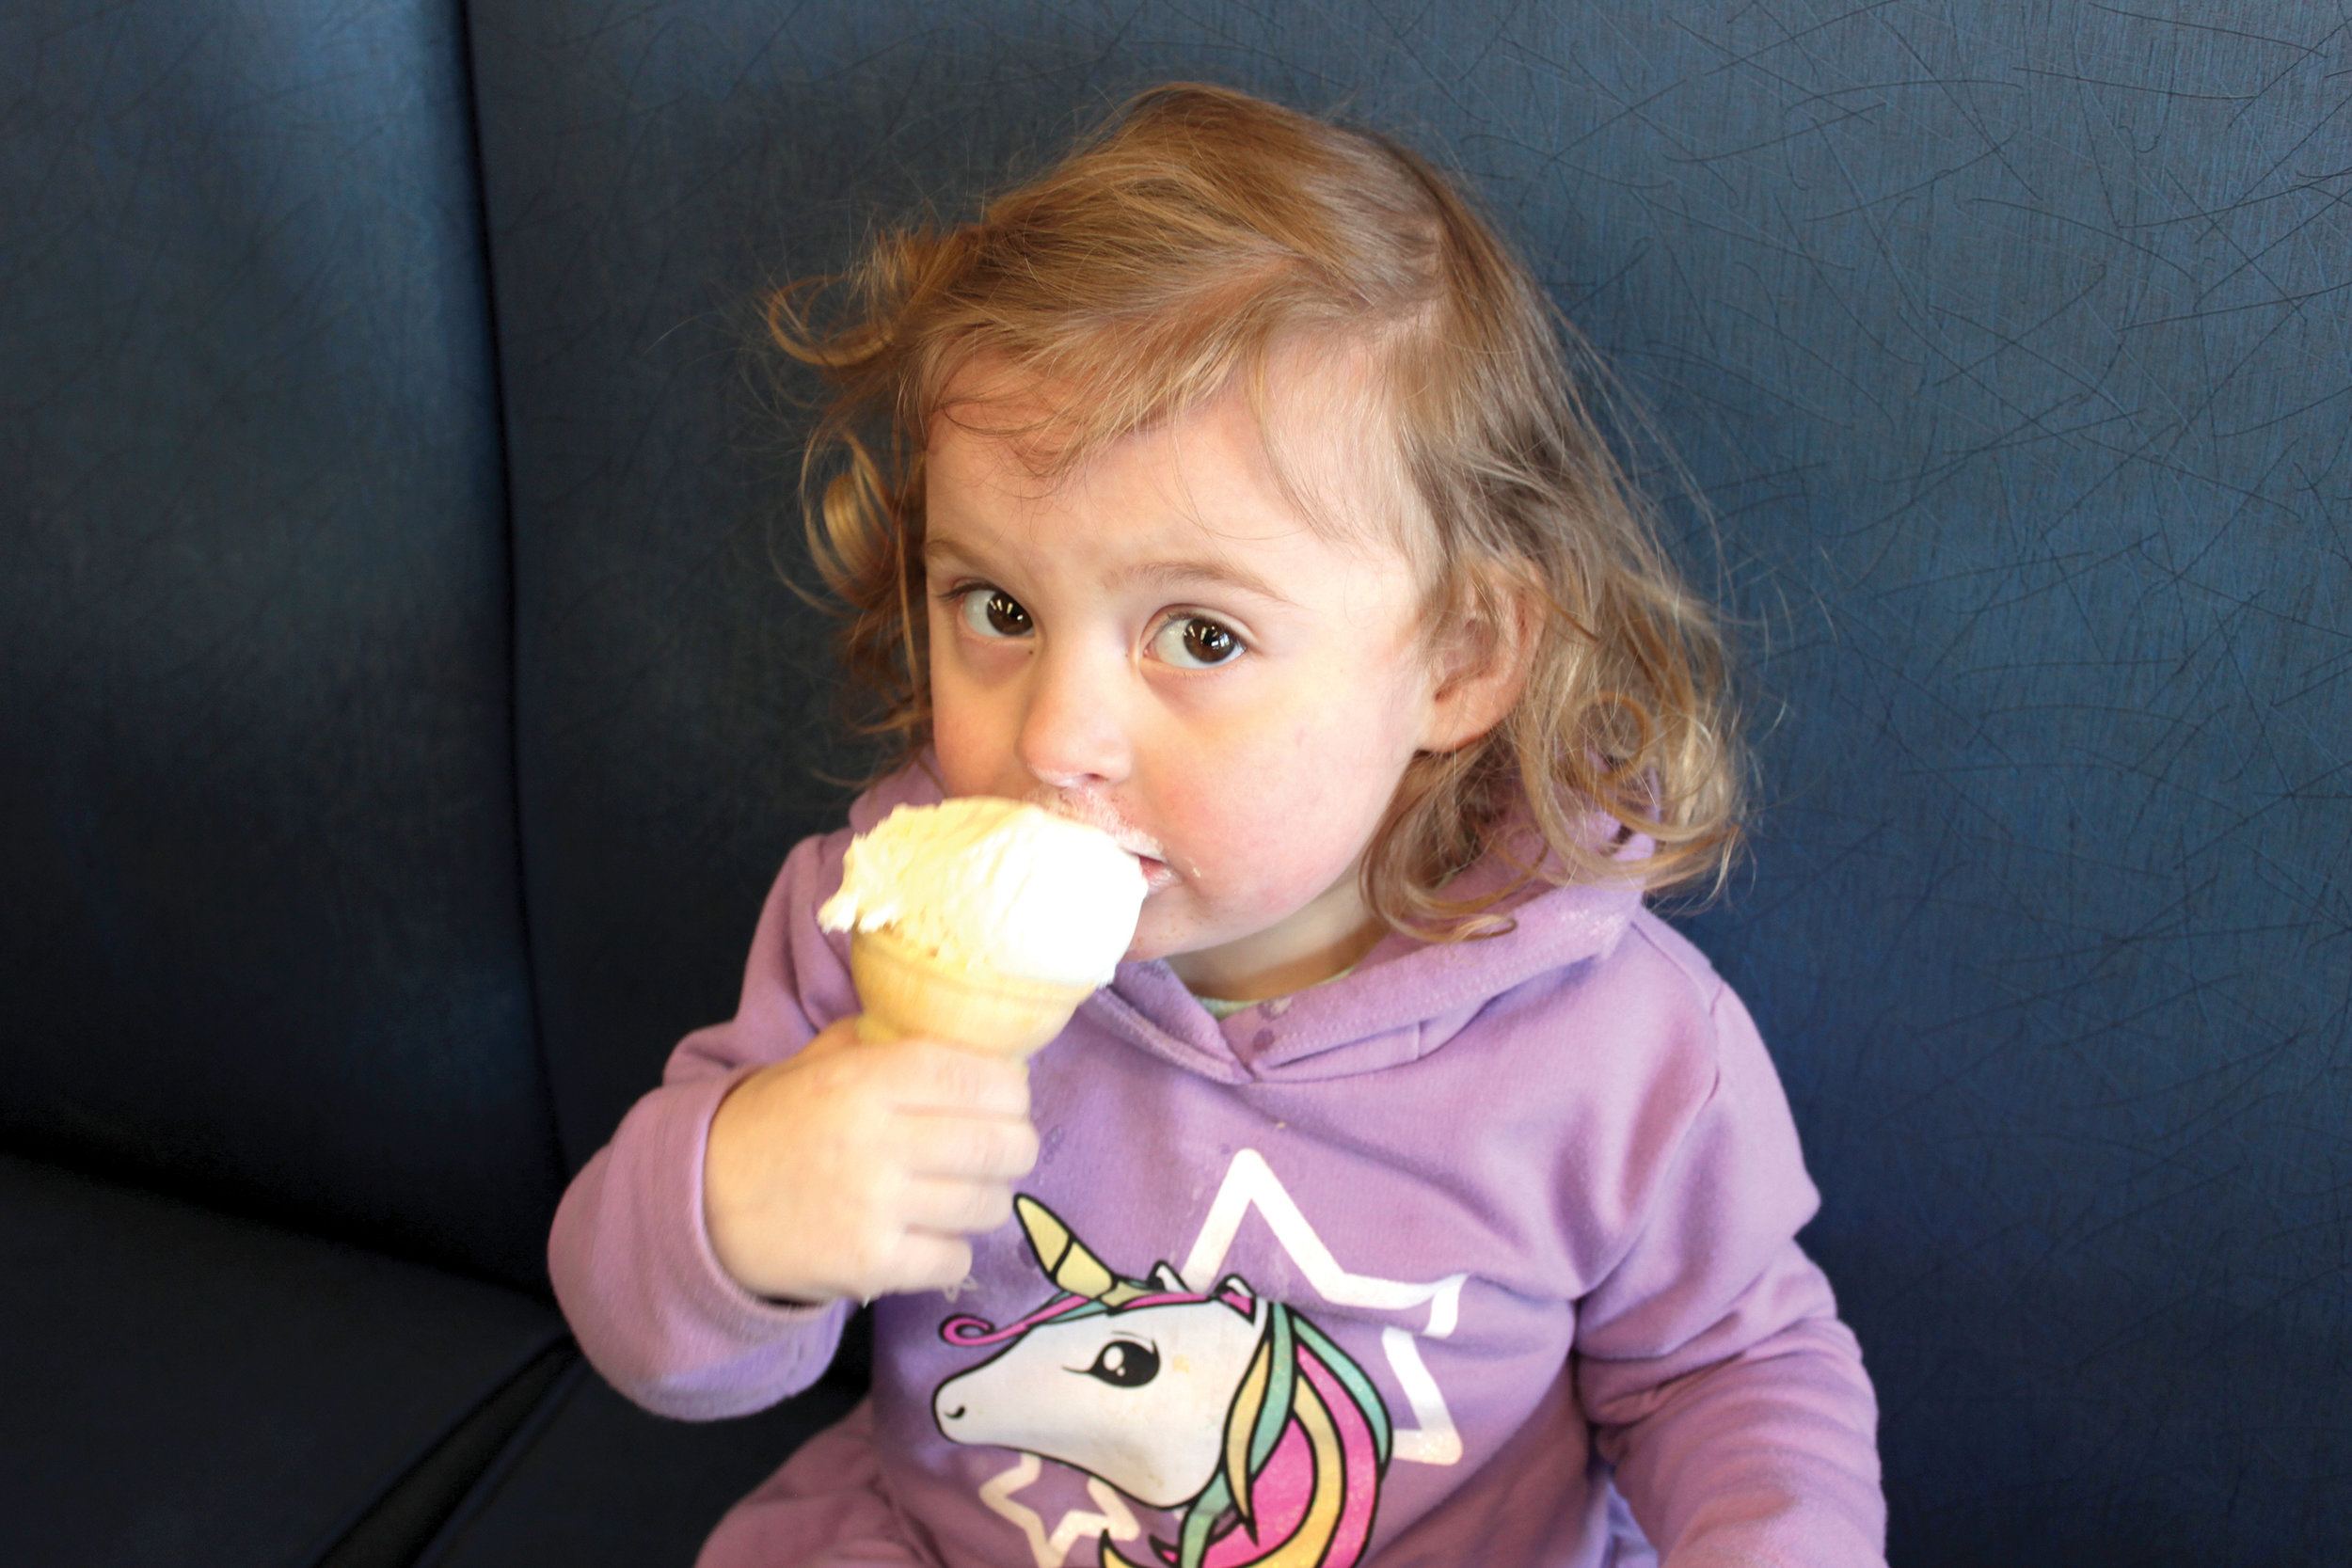 Boudica Kerr aged 2.5 is introduced to her first ice cream shop visit, with a much-negotiated and highly-compromised scoop of vanilla. Photo by James Kerr.